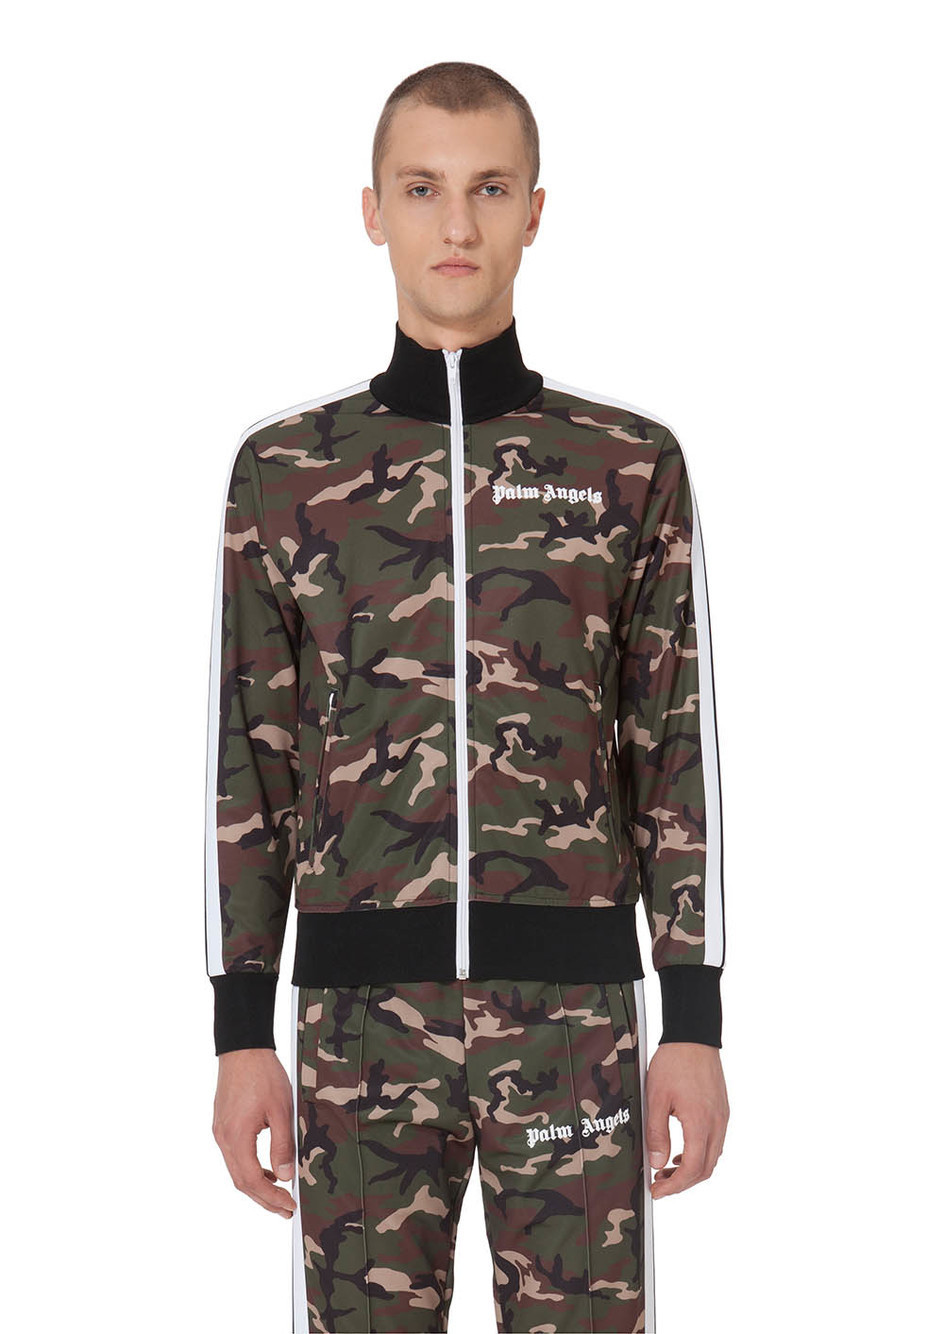 【PALM ANGELS】☆セレブ愛用☆18SS最新*CAMOUFLAGE JACKET